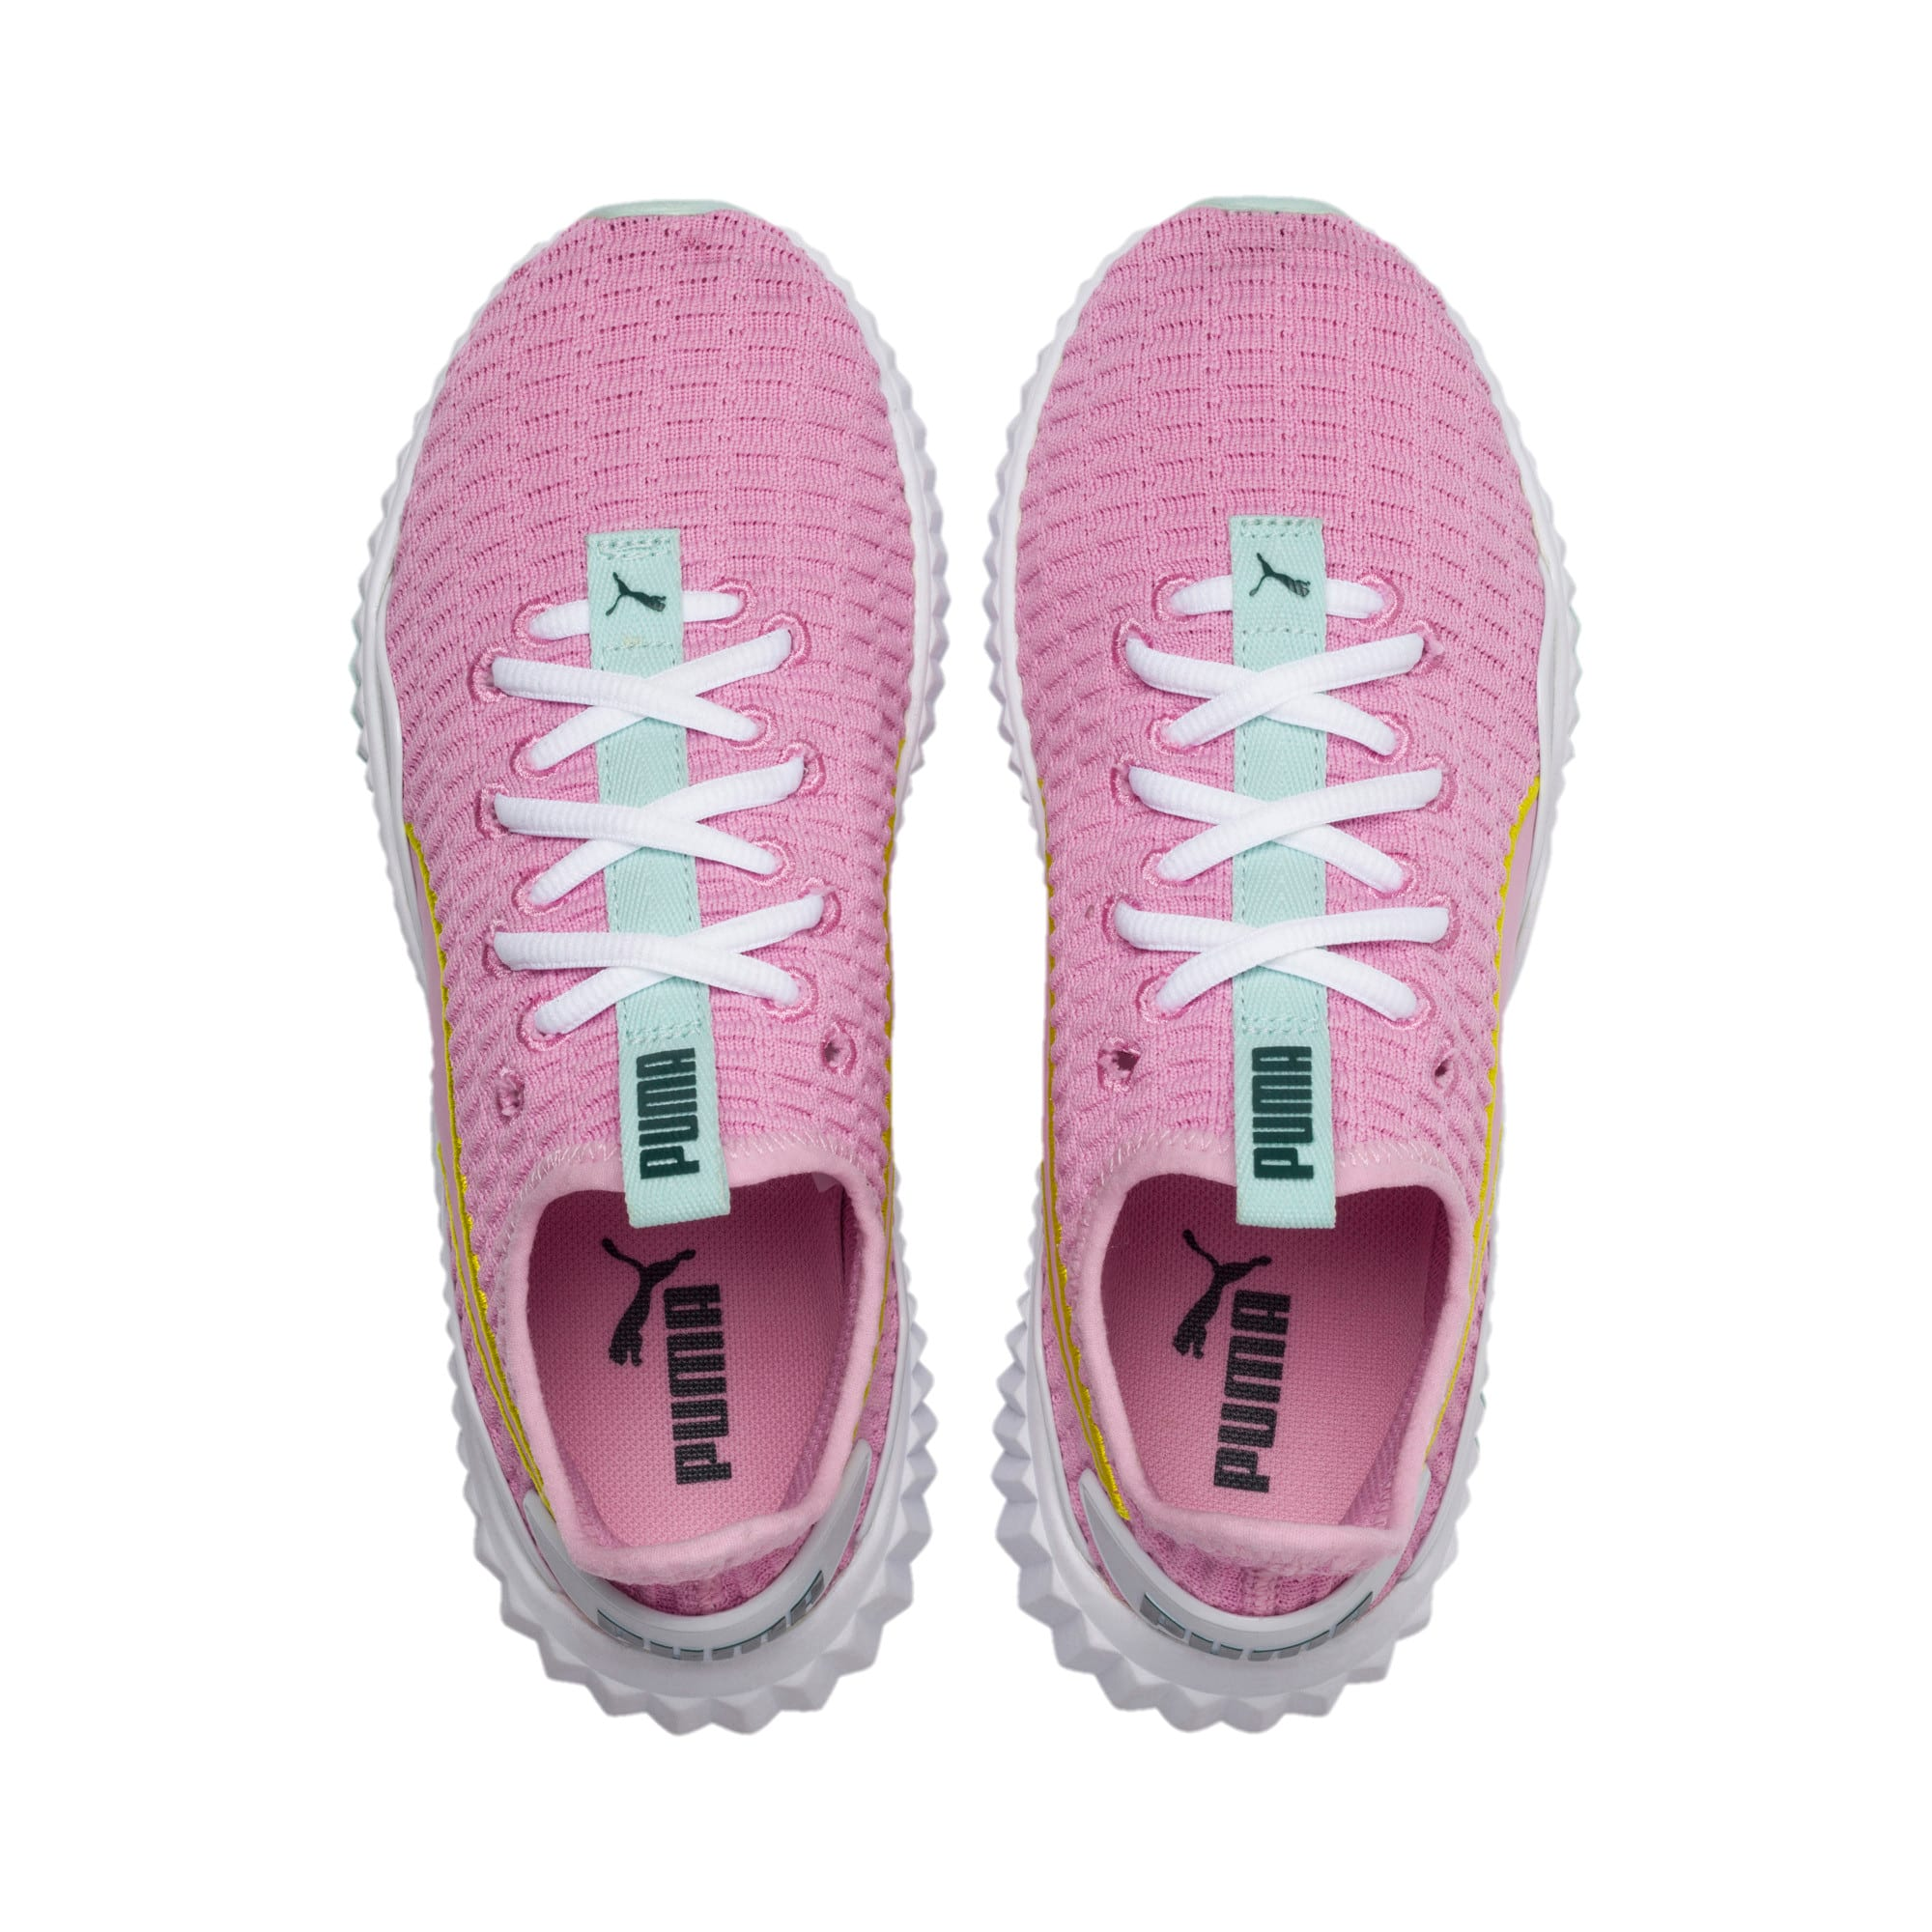 Thumbnail 6 of Defy sneakers voor meisjes, Pale Pink-White-Fair Aqua, medium